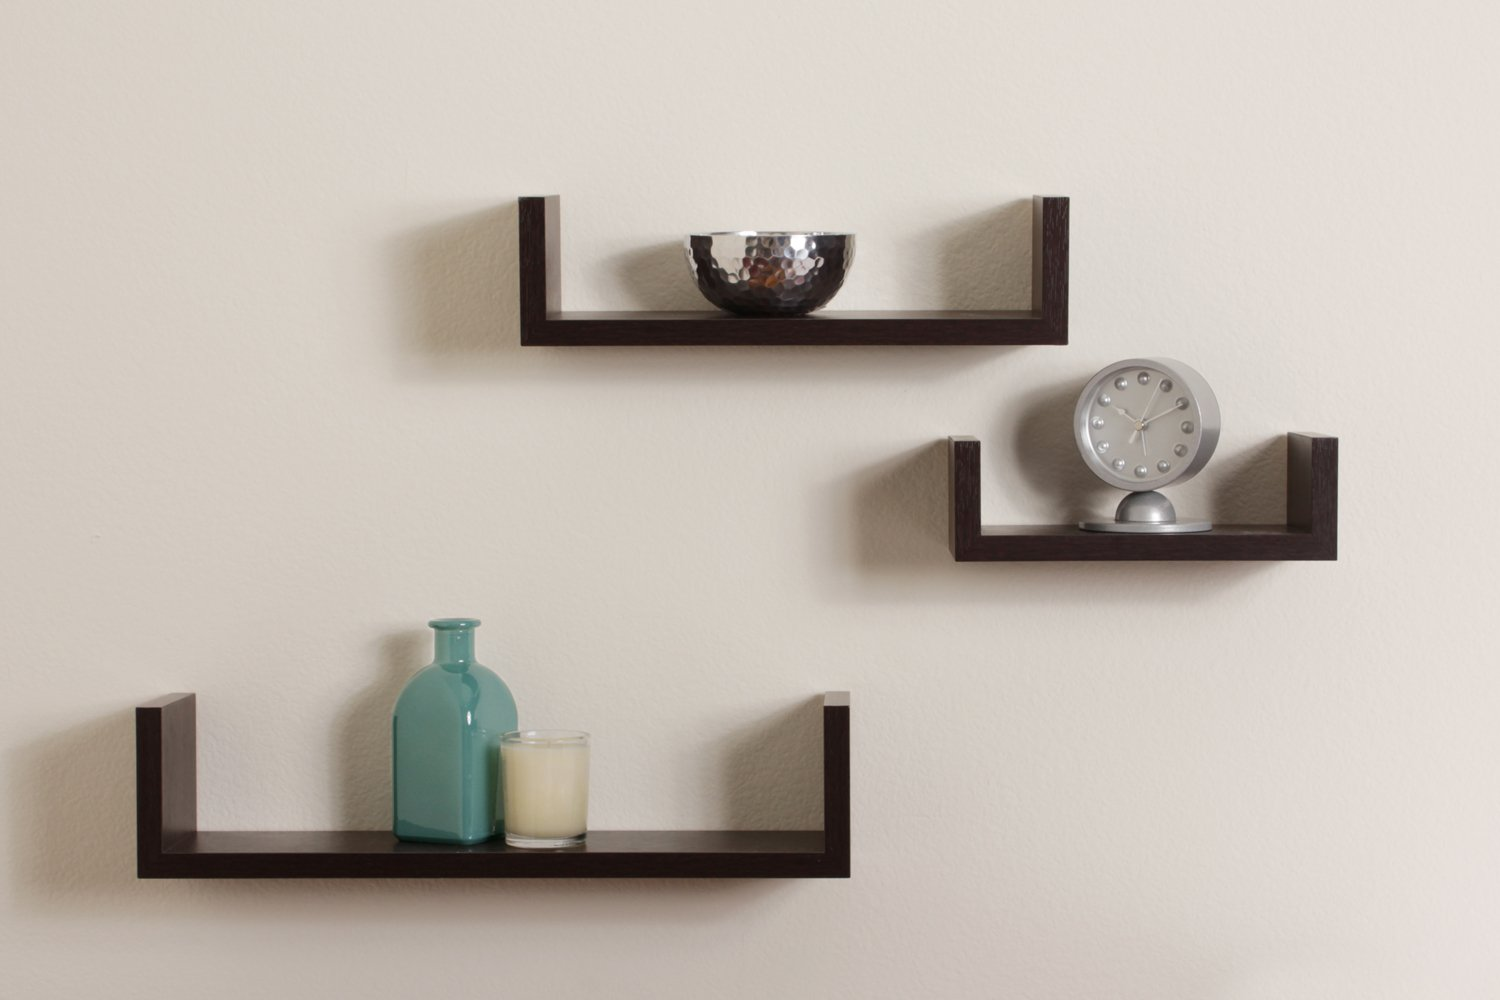 office floating shelves. amazoncom danya b xf11039bk laminate floating u shelves set of 3 pieces black home u0026 kitchen office e